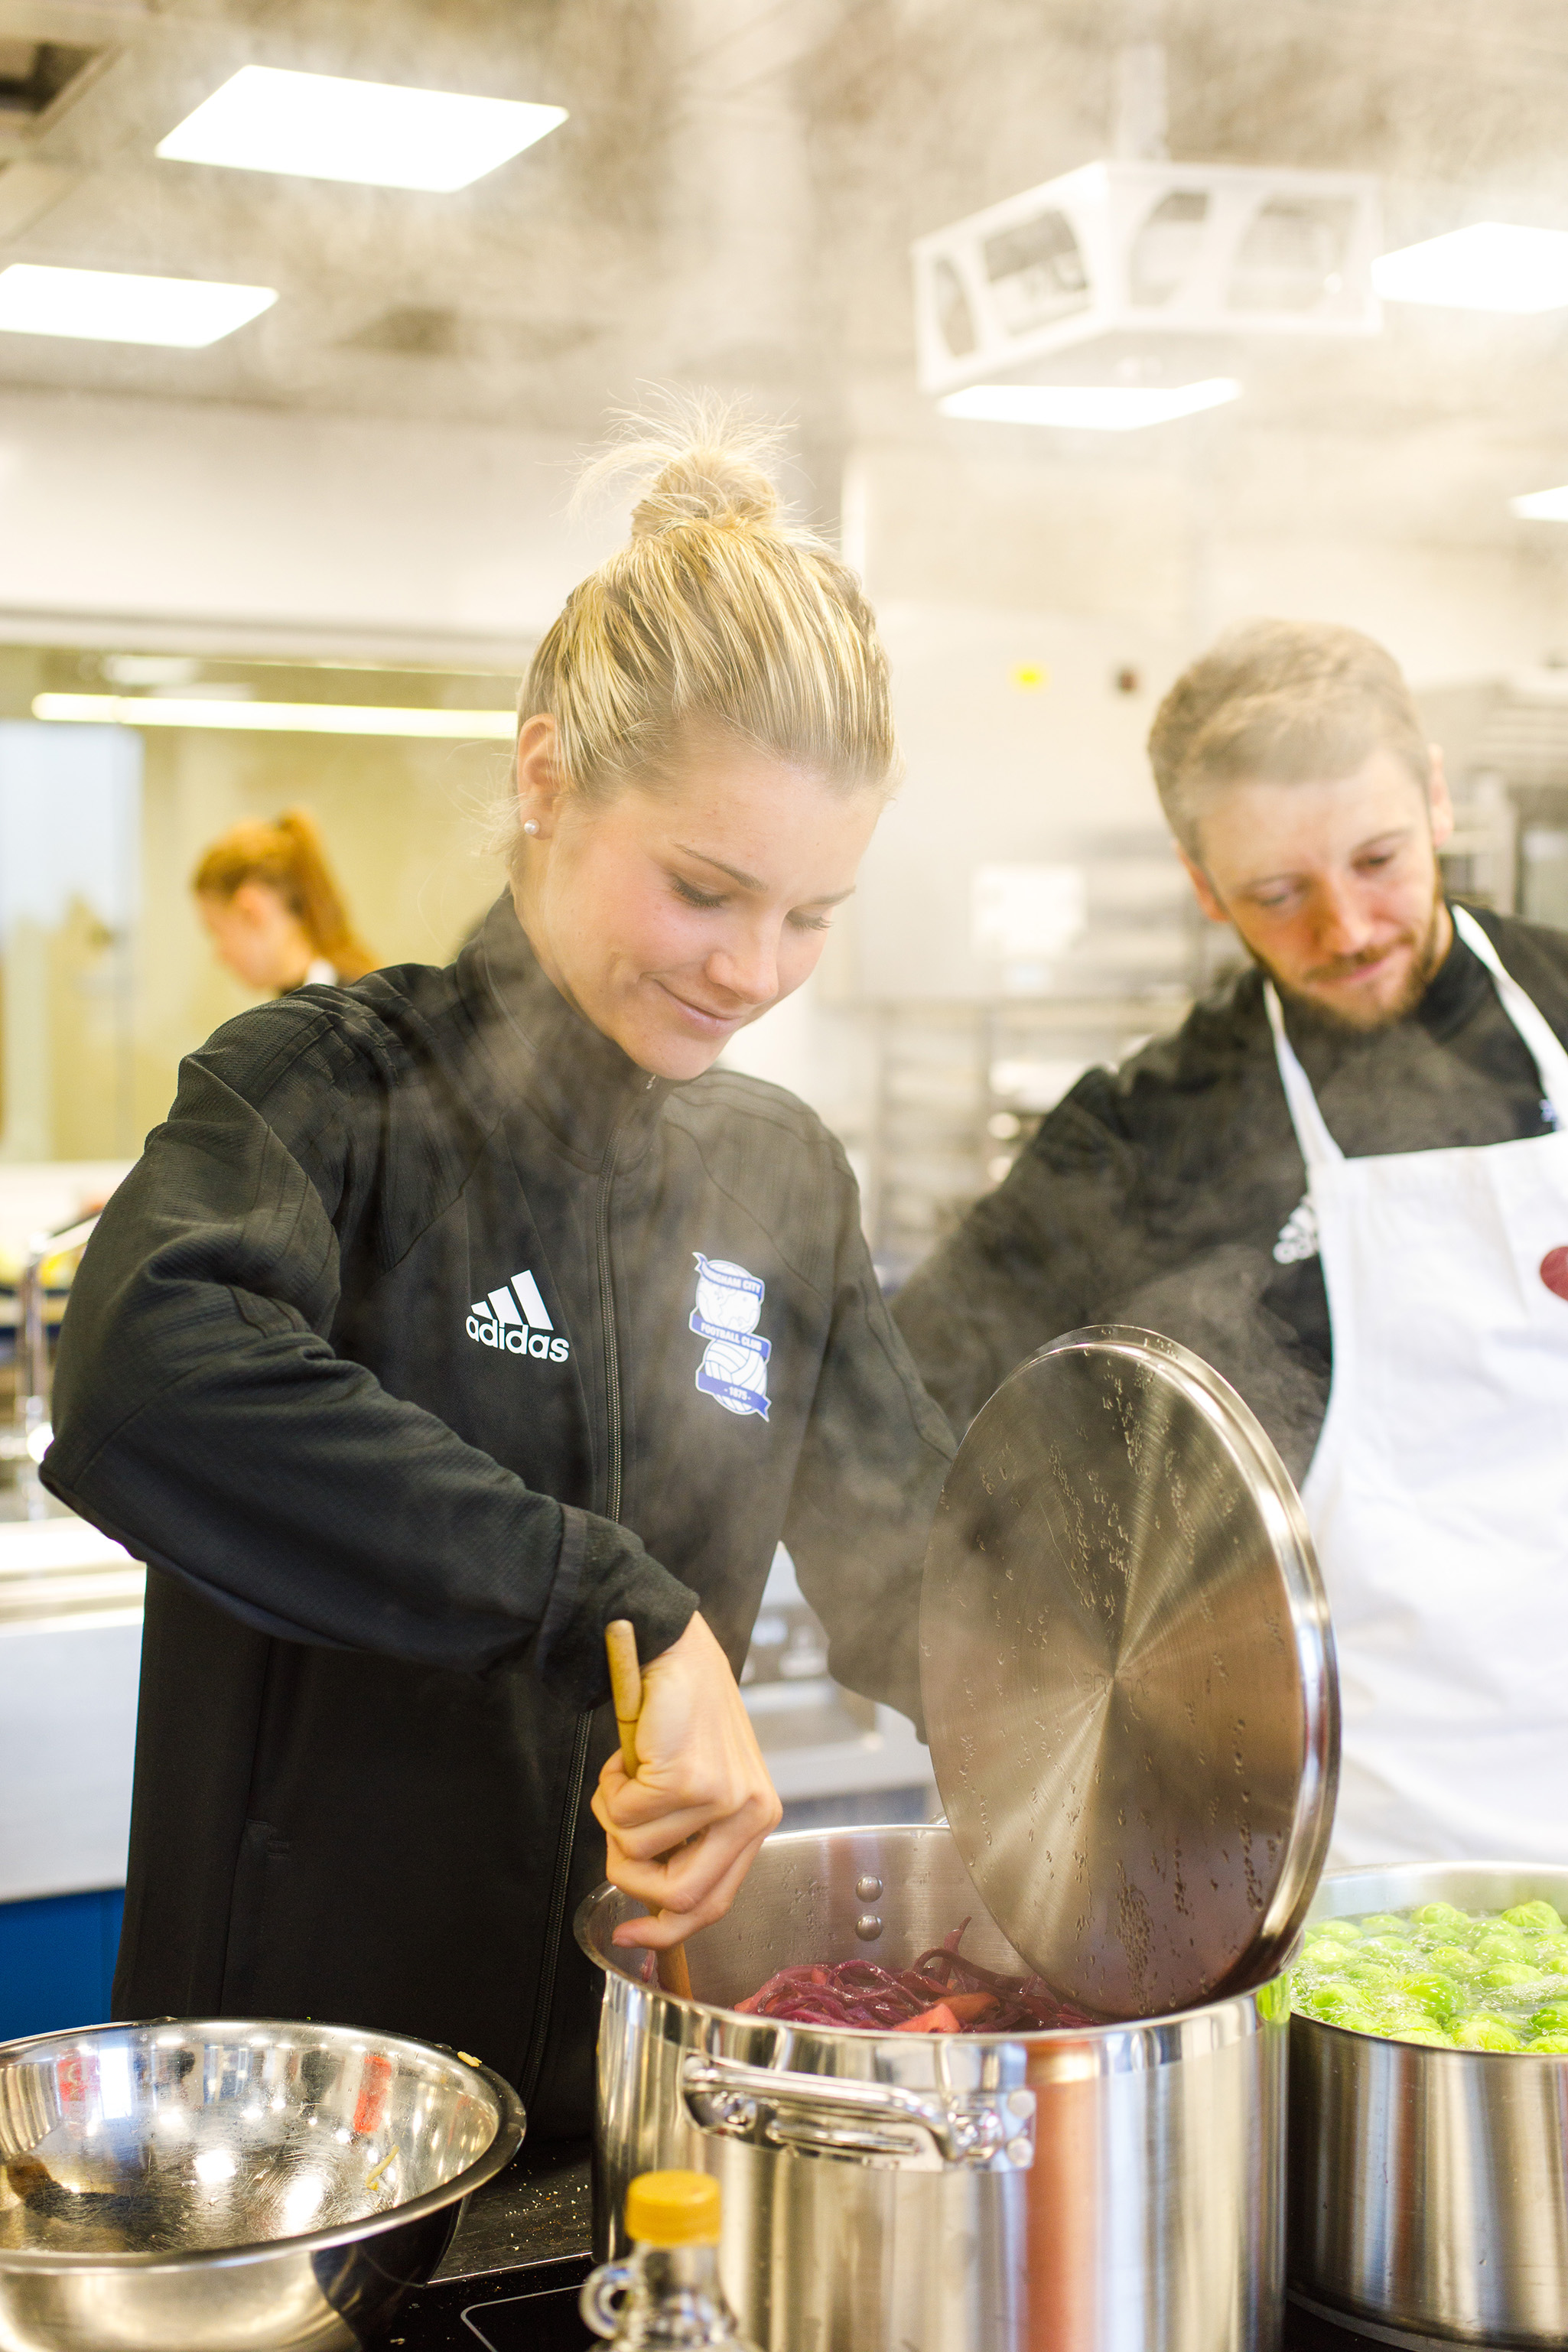 Birmingham City Ladies FC player cooking up a Christmas feast